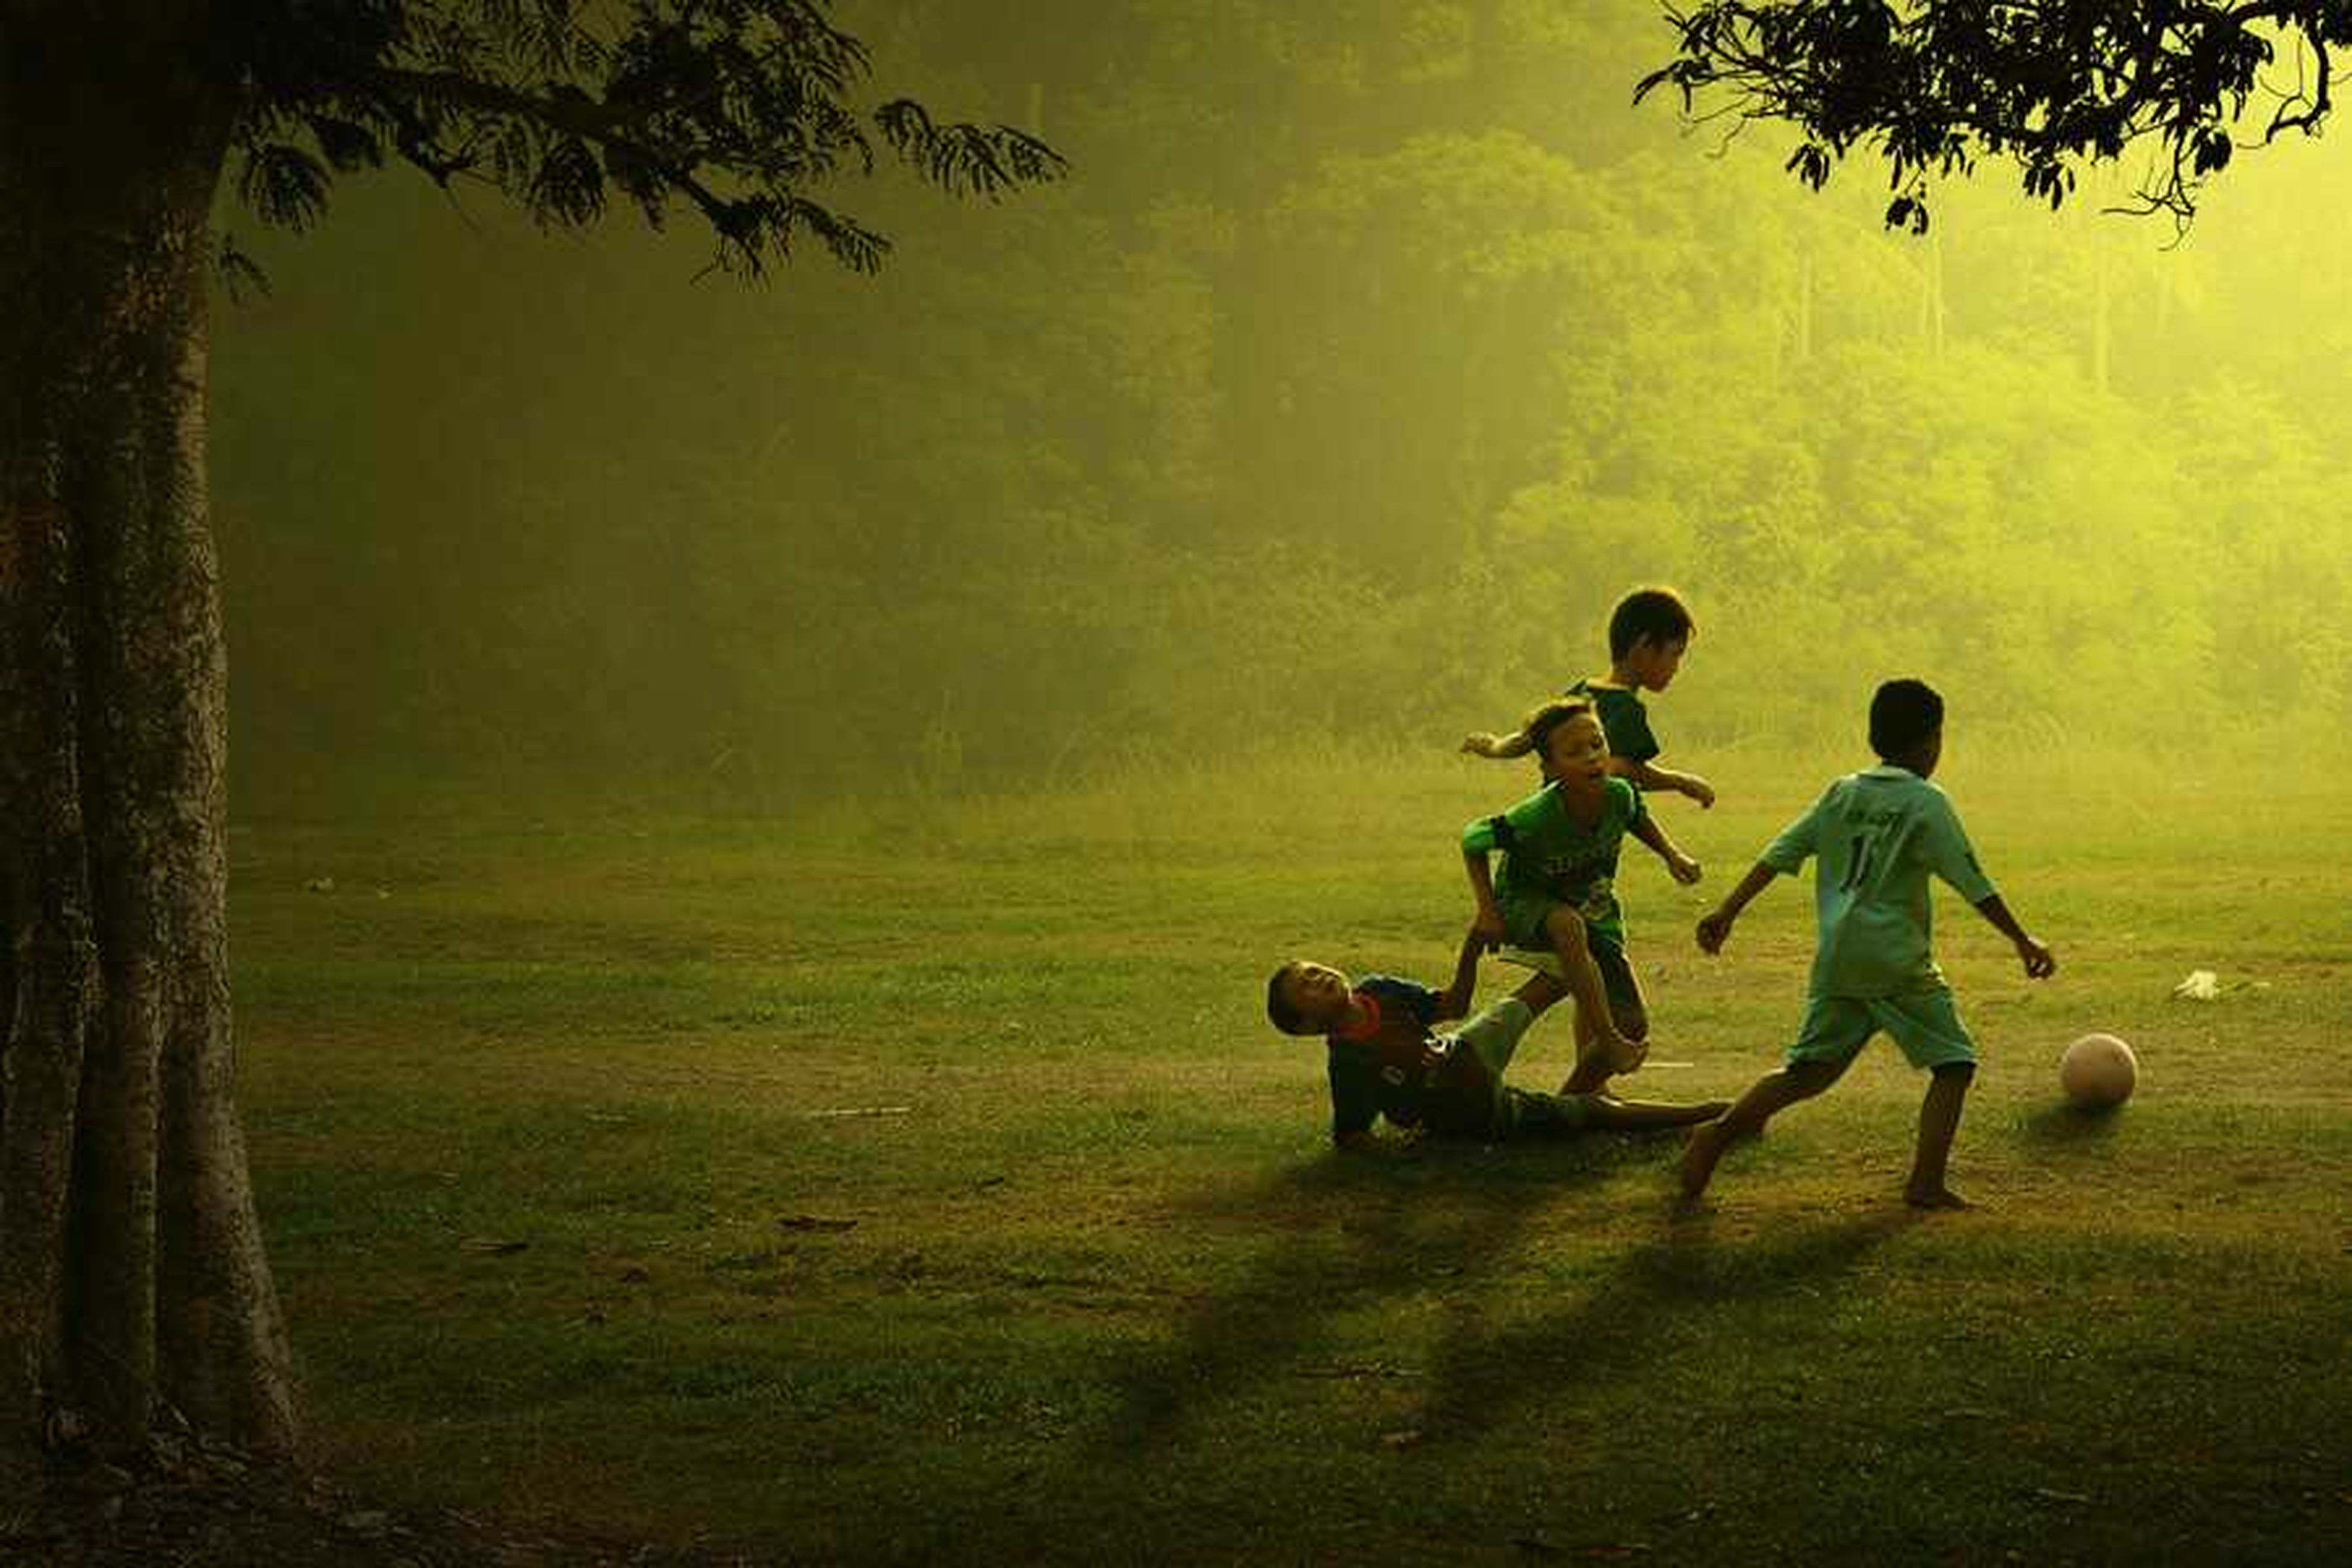 full length, lifestyles, leisure activity, childhood, boys, togetherness, bonding, men, girls, casual clothing, elementary age, love, grass, tree, family, field, children